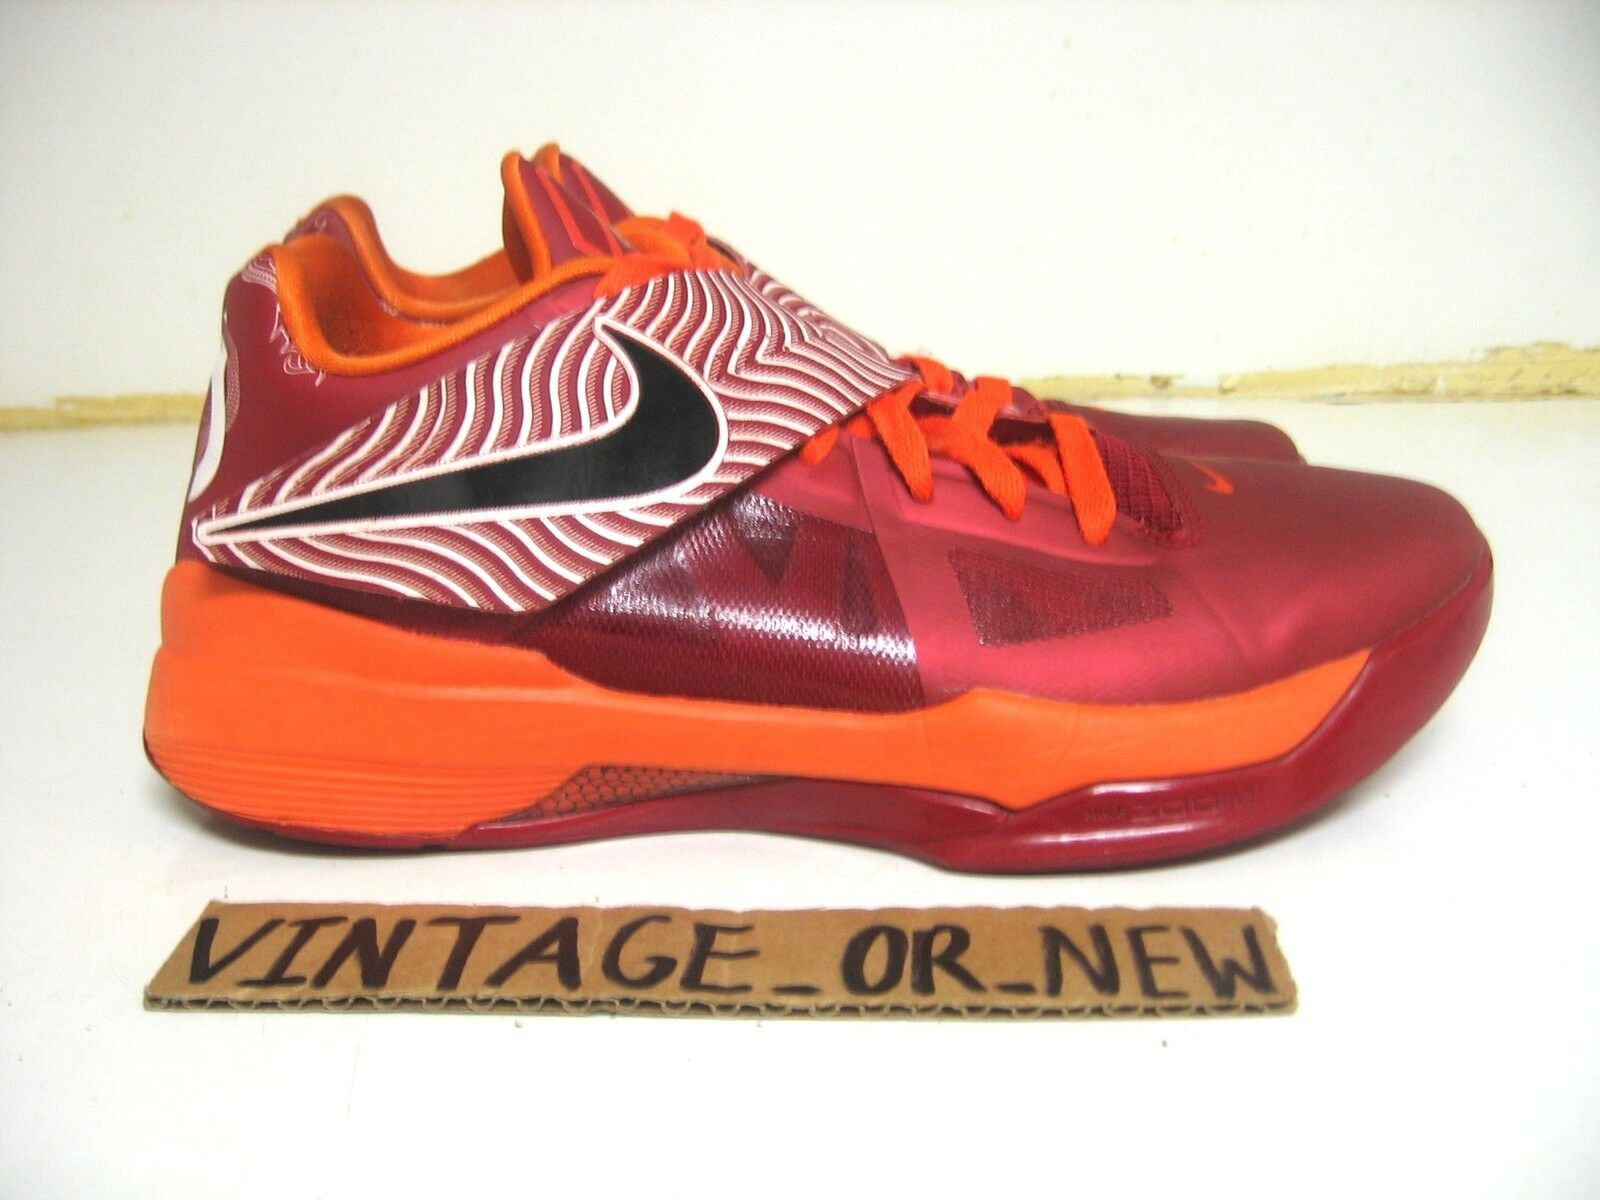 Nike zoom kd iv id 4 virginia yotd anno del drago virginia 4 tech hokies sz 9,5 nerf 7 0c5dd8